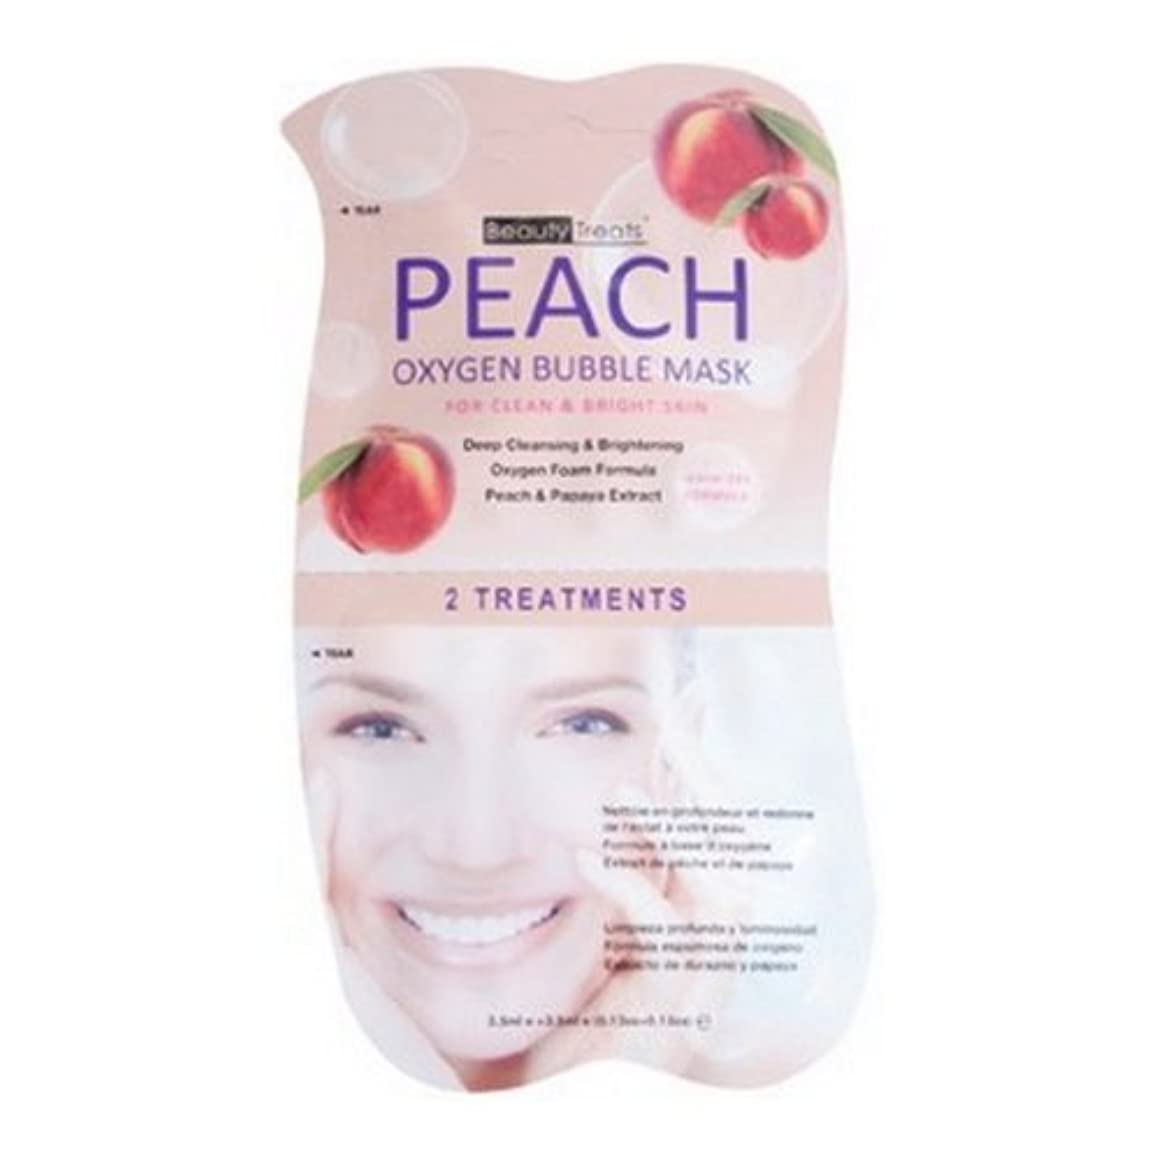 強調忘れっぽいバイアス(3 Pack) BEAUTY TREATS Peach Oxygen Bubble Mask - Peach (並行輸入品)